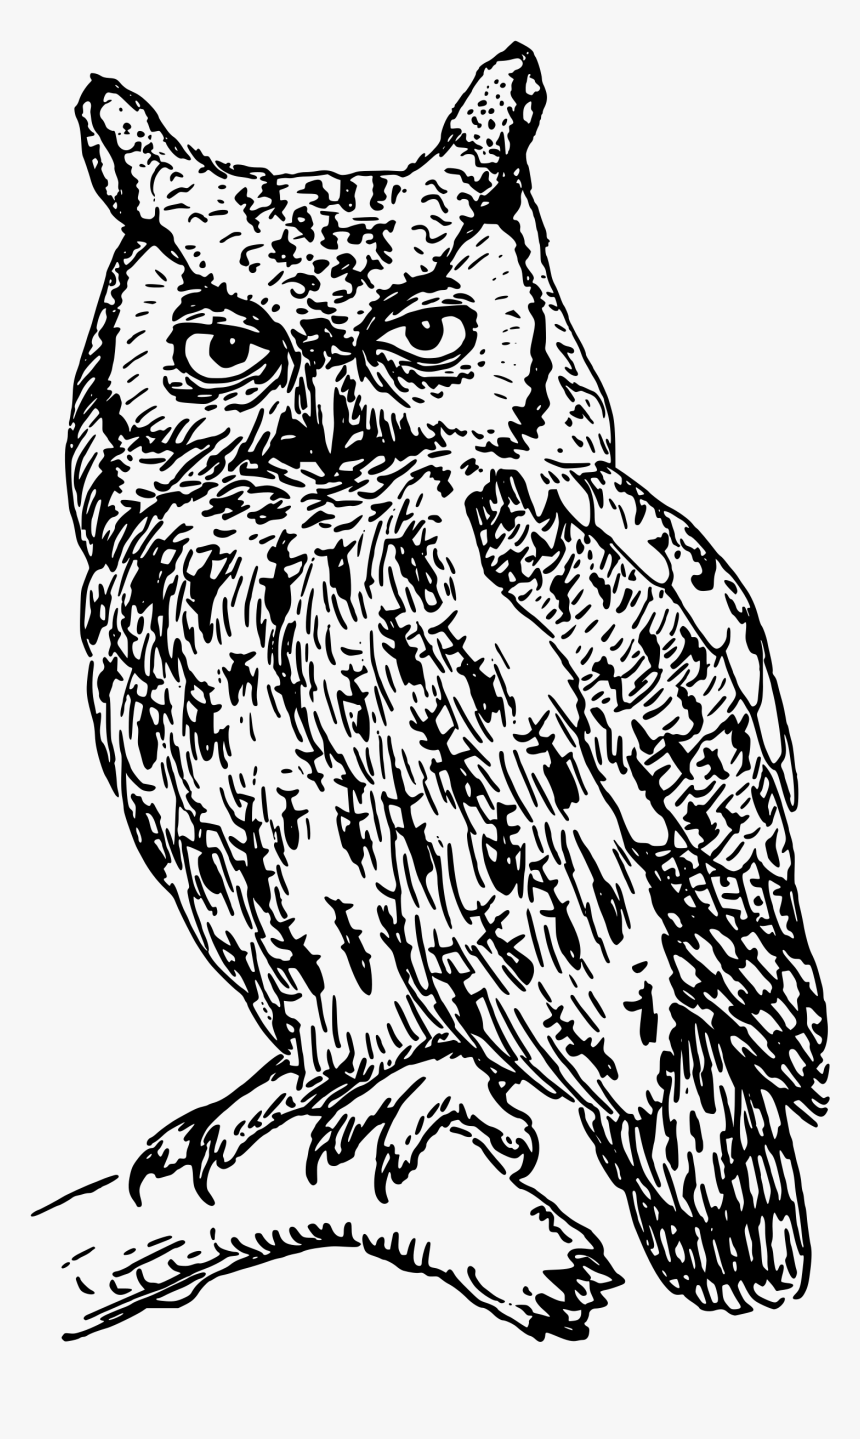 Download Owl Png Transparent Image - Clip Art Black And White Owl, Png Download, Free Download